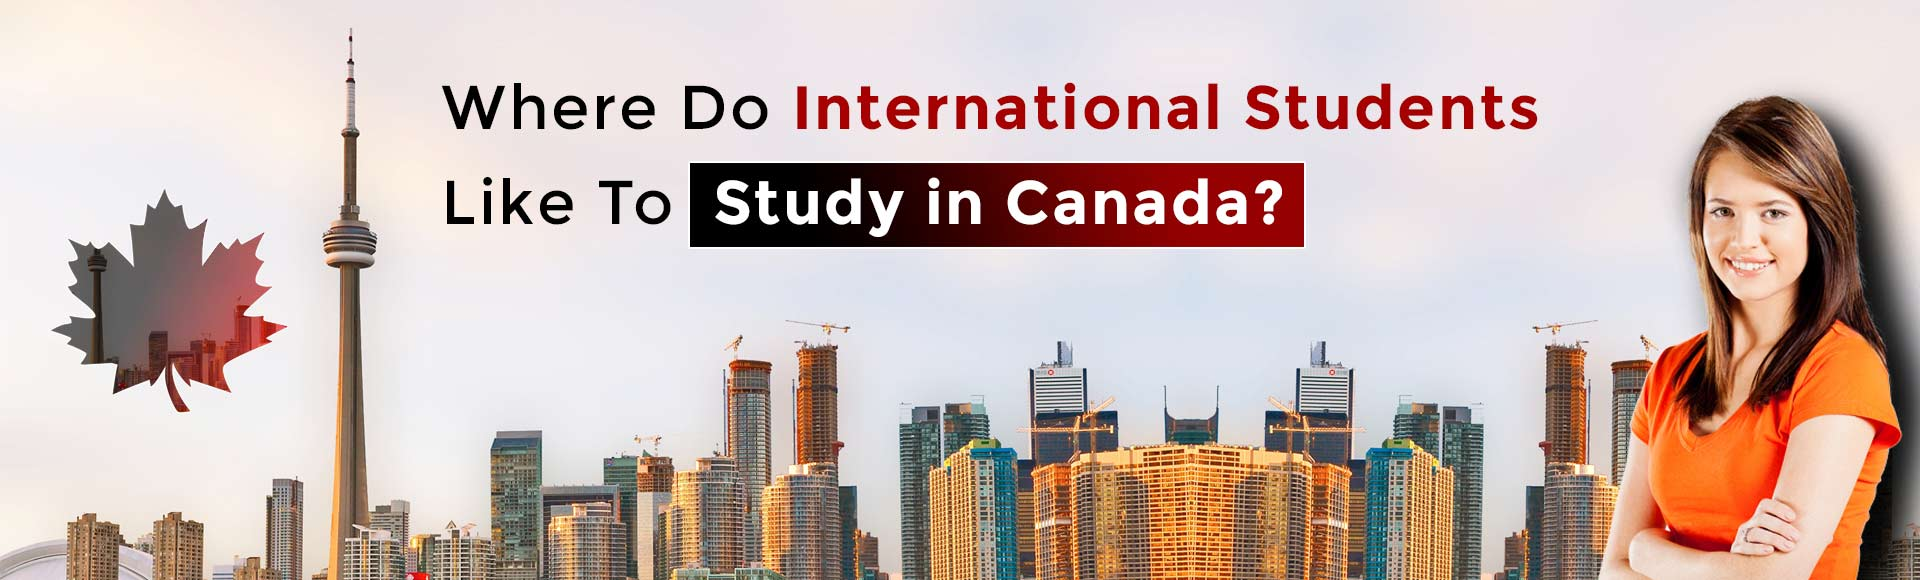 Where do international students like to study in Canada?